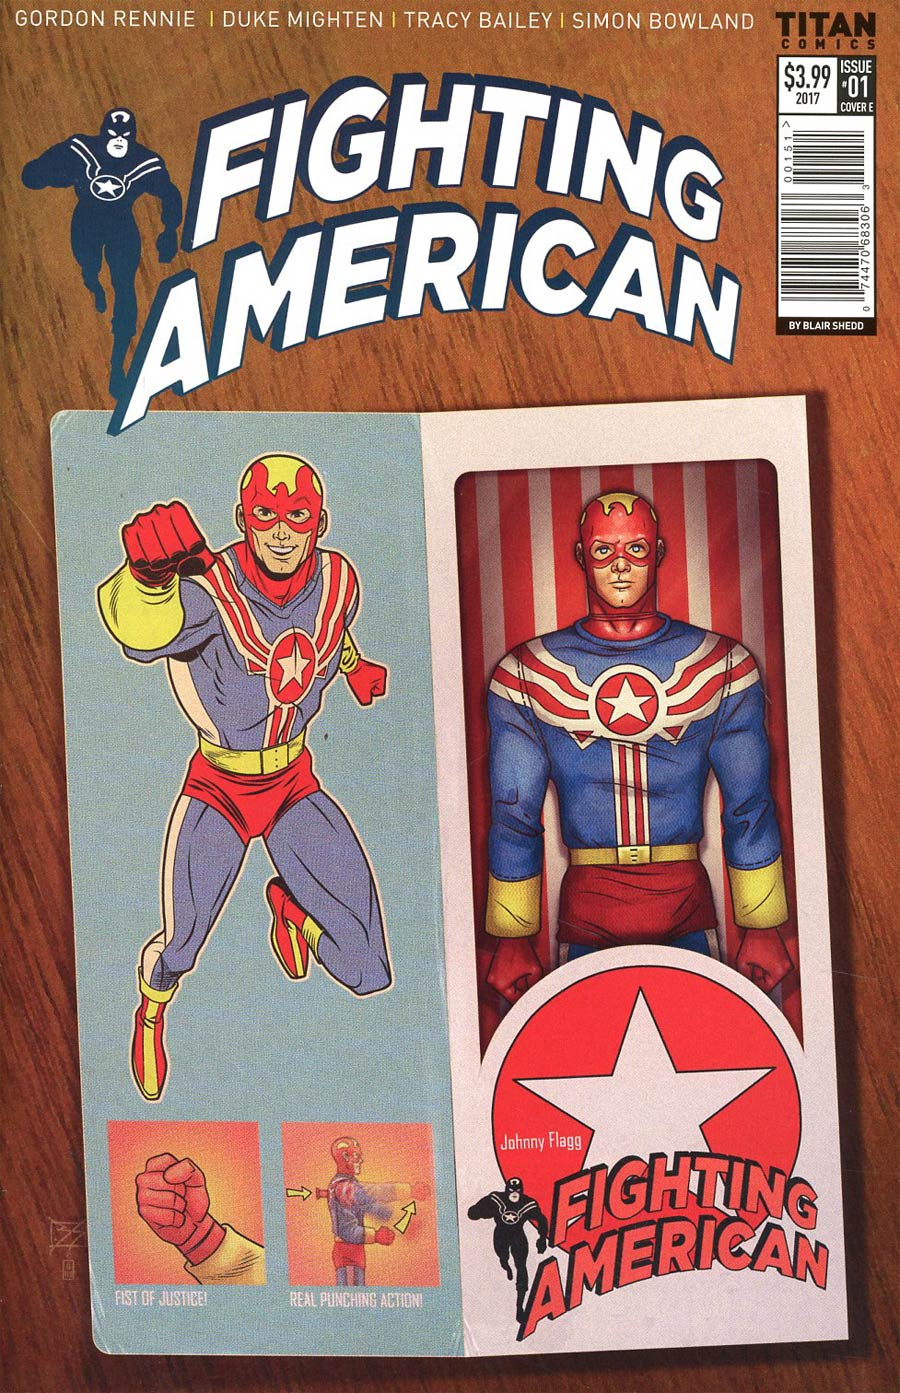 Fighting American Vol 4 #1 Cover E Variant Blair Shedd Action Figure Cover